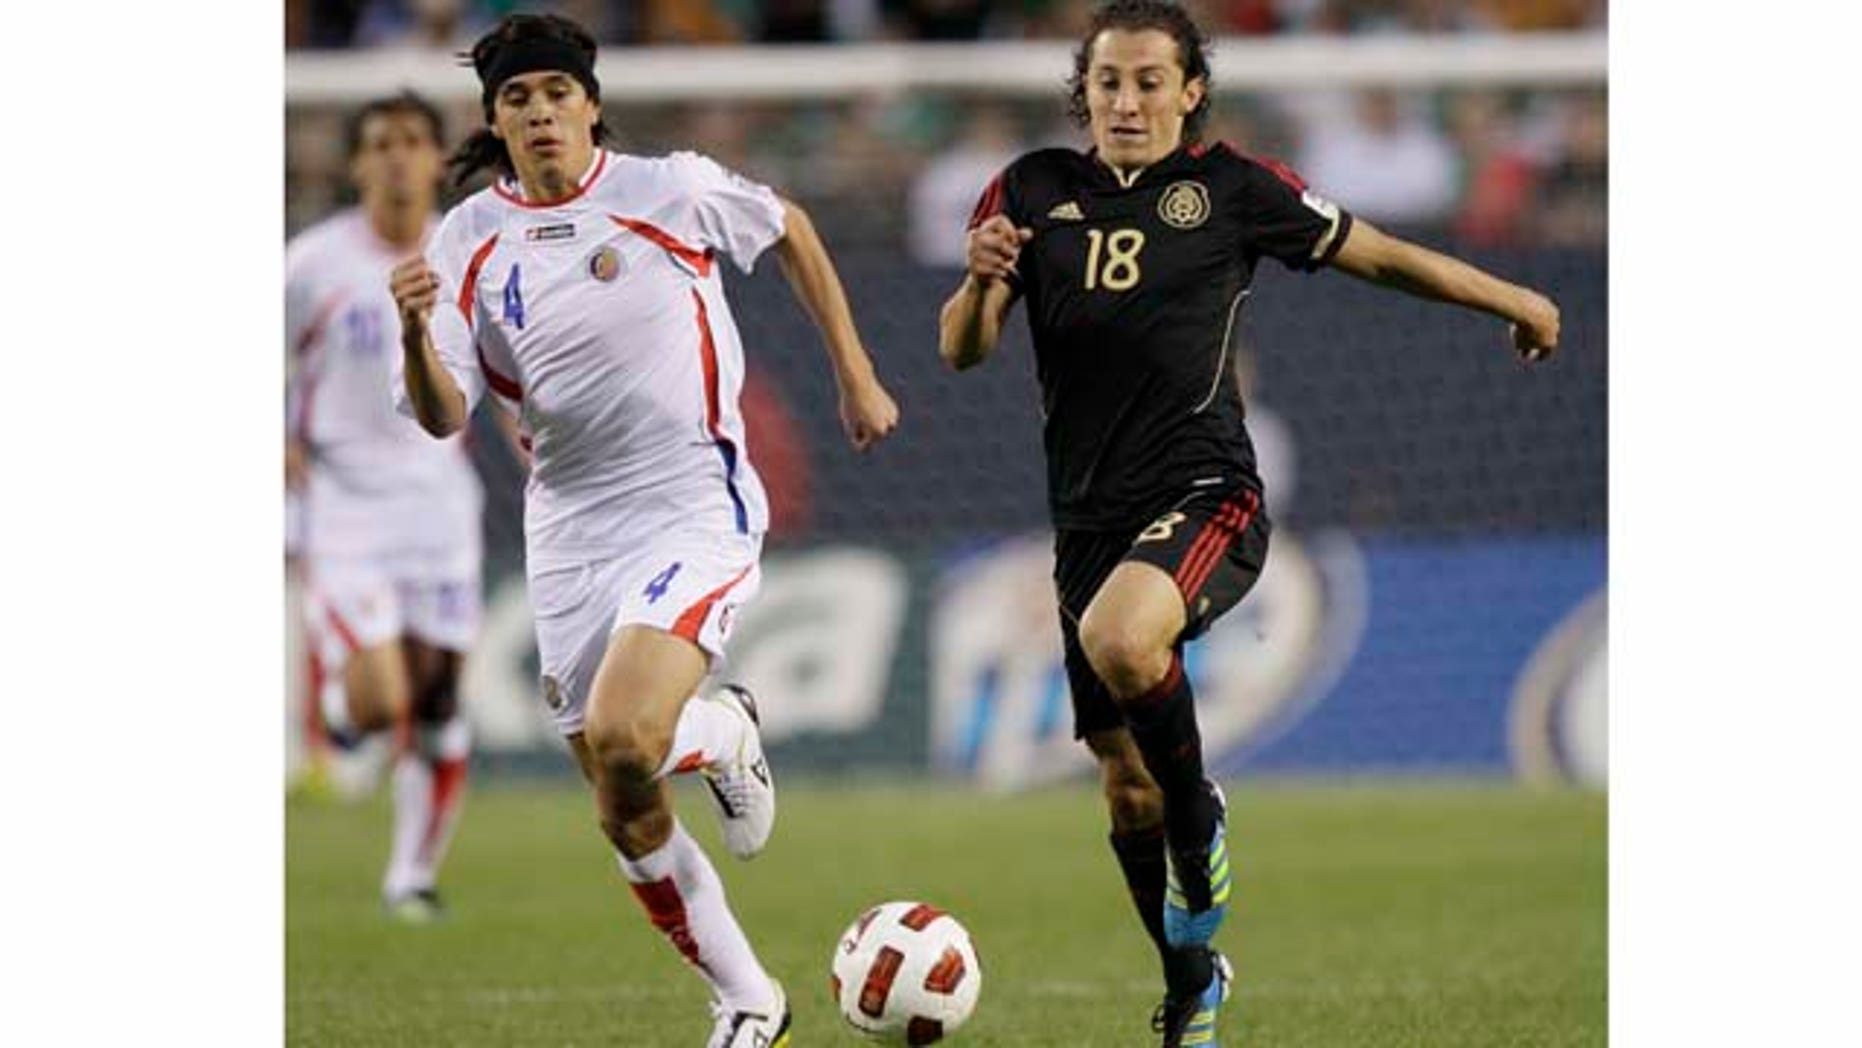 Mexico's Andres Guardado, right, controls the ball past Costa Rica's Jose Salvatierra during the second half of a CONCACAF Gold Cup soccer match at Soldier Field on Sunday, June 12, 2011, in Chicago. Mexico won 4-1. (AP Photo/Nam Y. Huh)